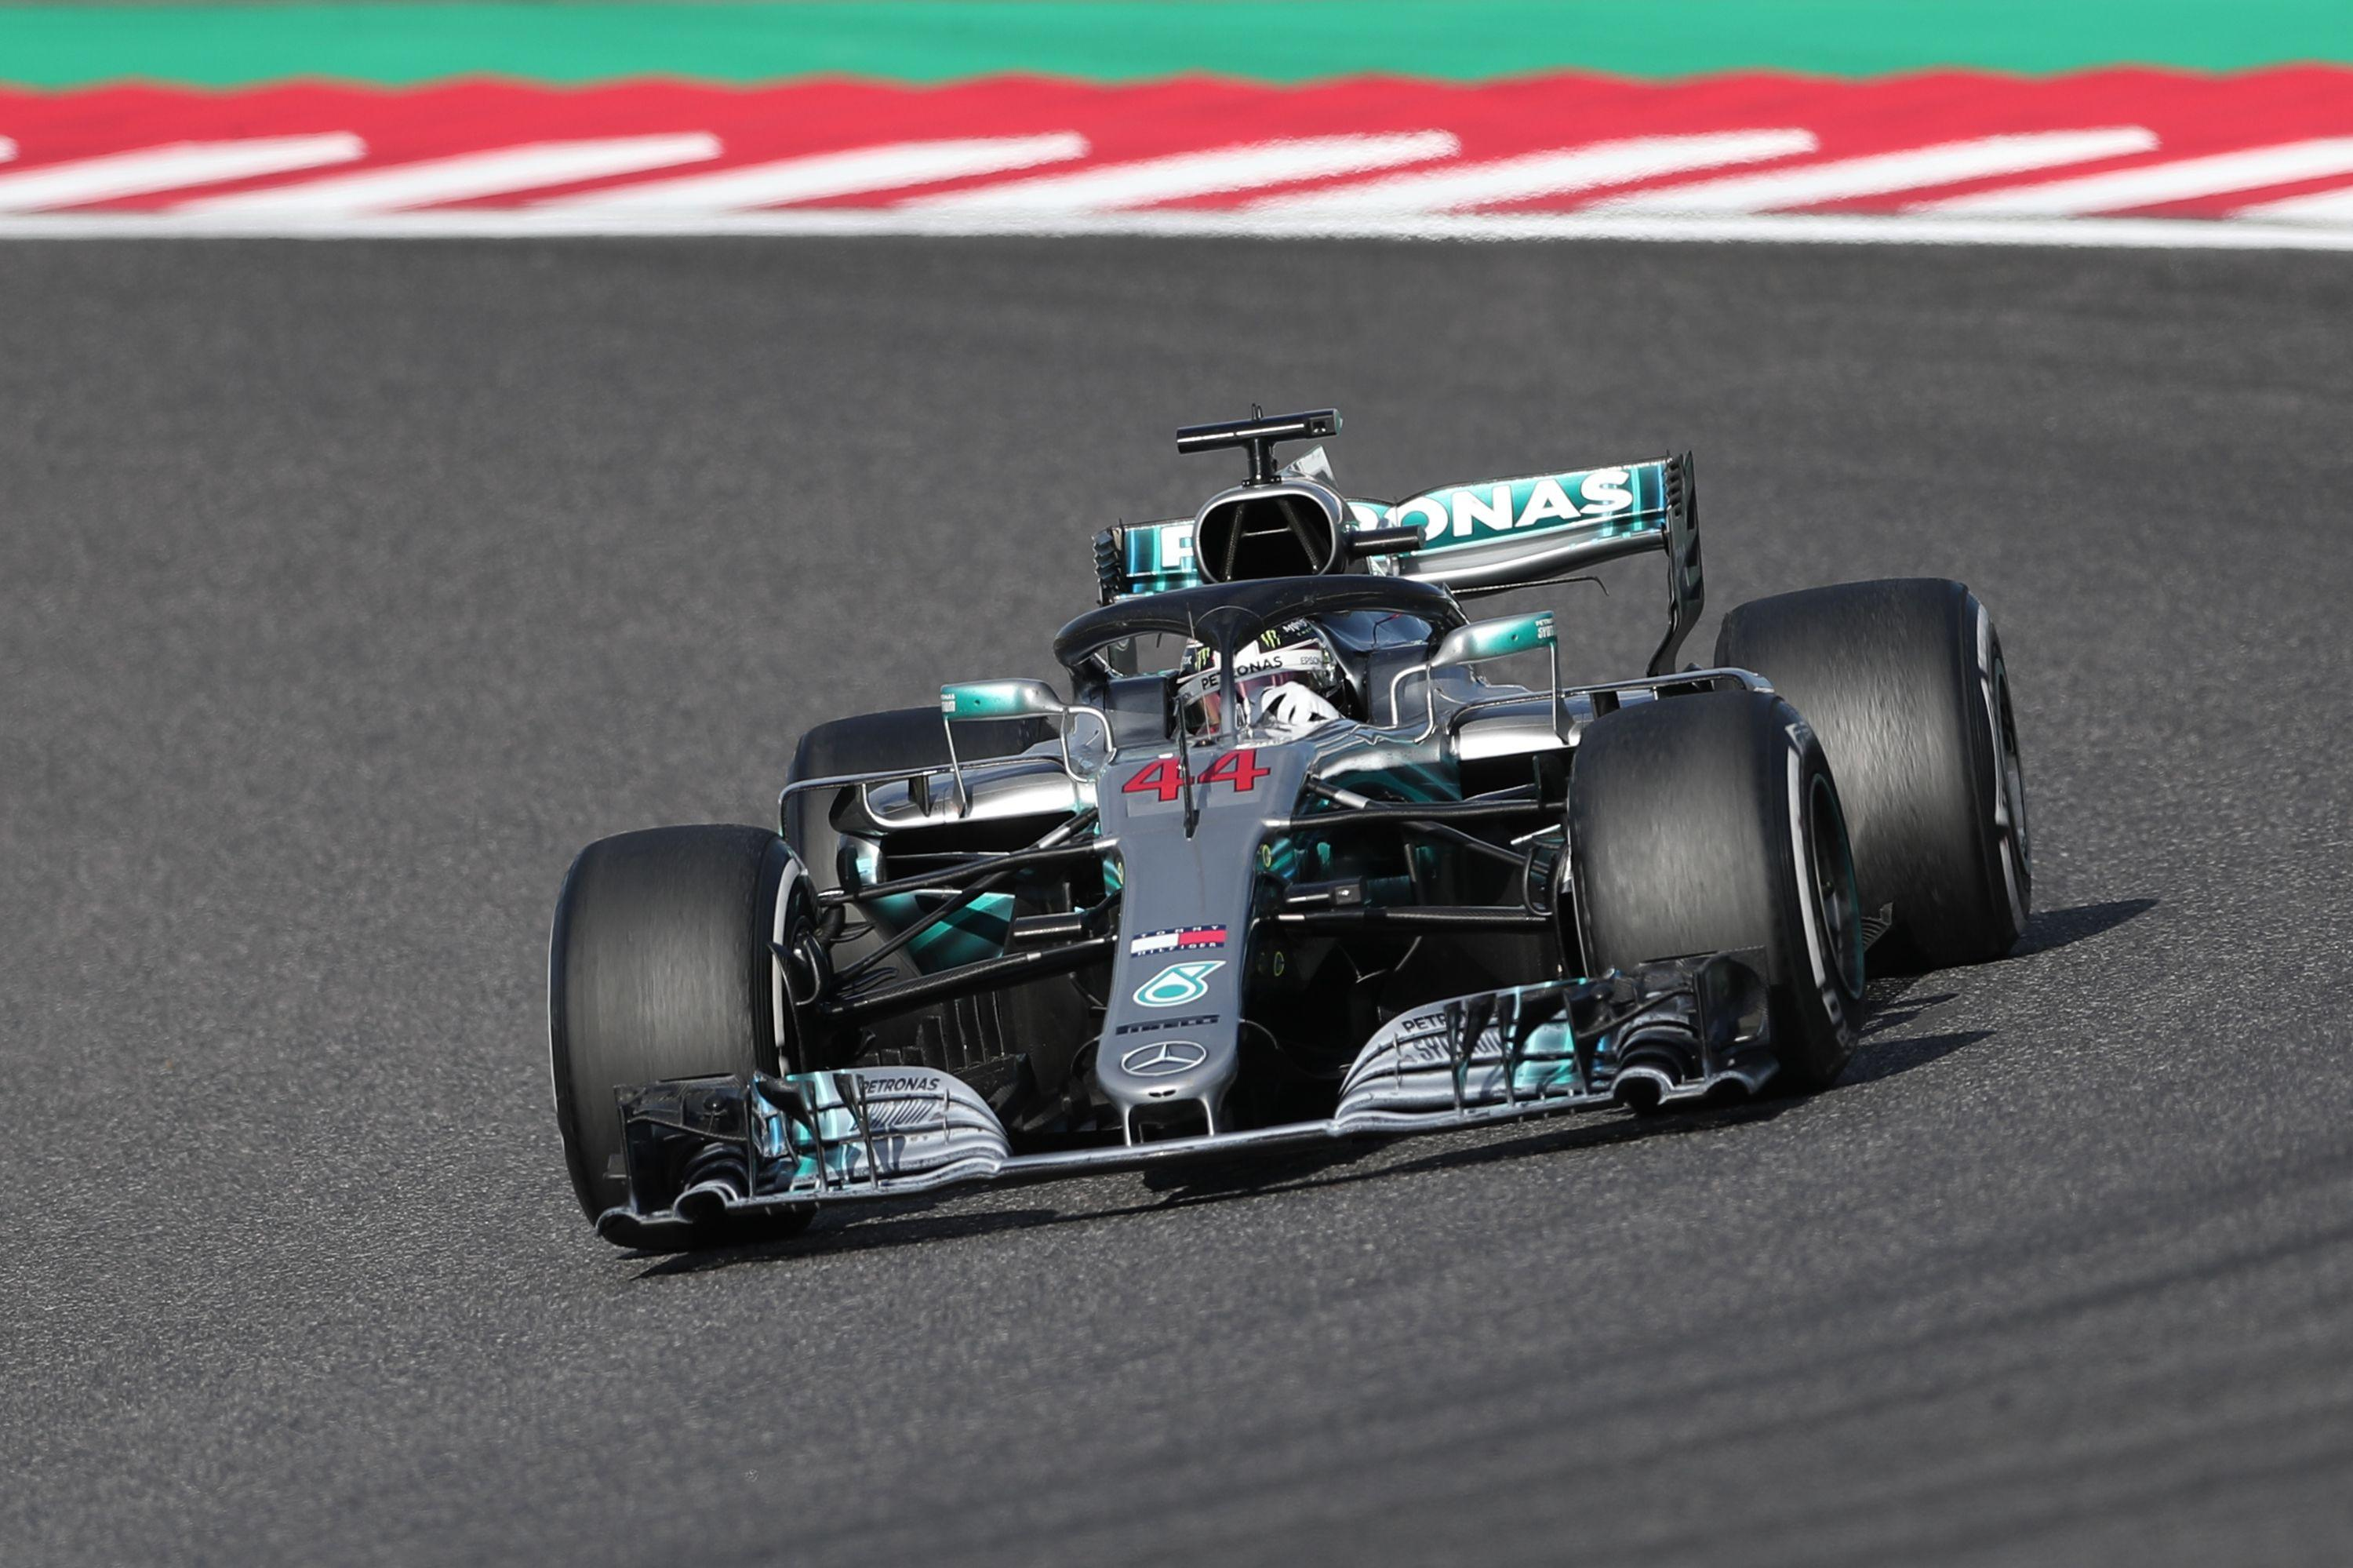 Lewis Hamilton won the Japan GP with a dominant performance at Suzuka